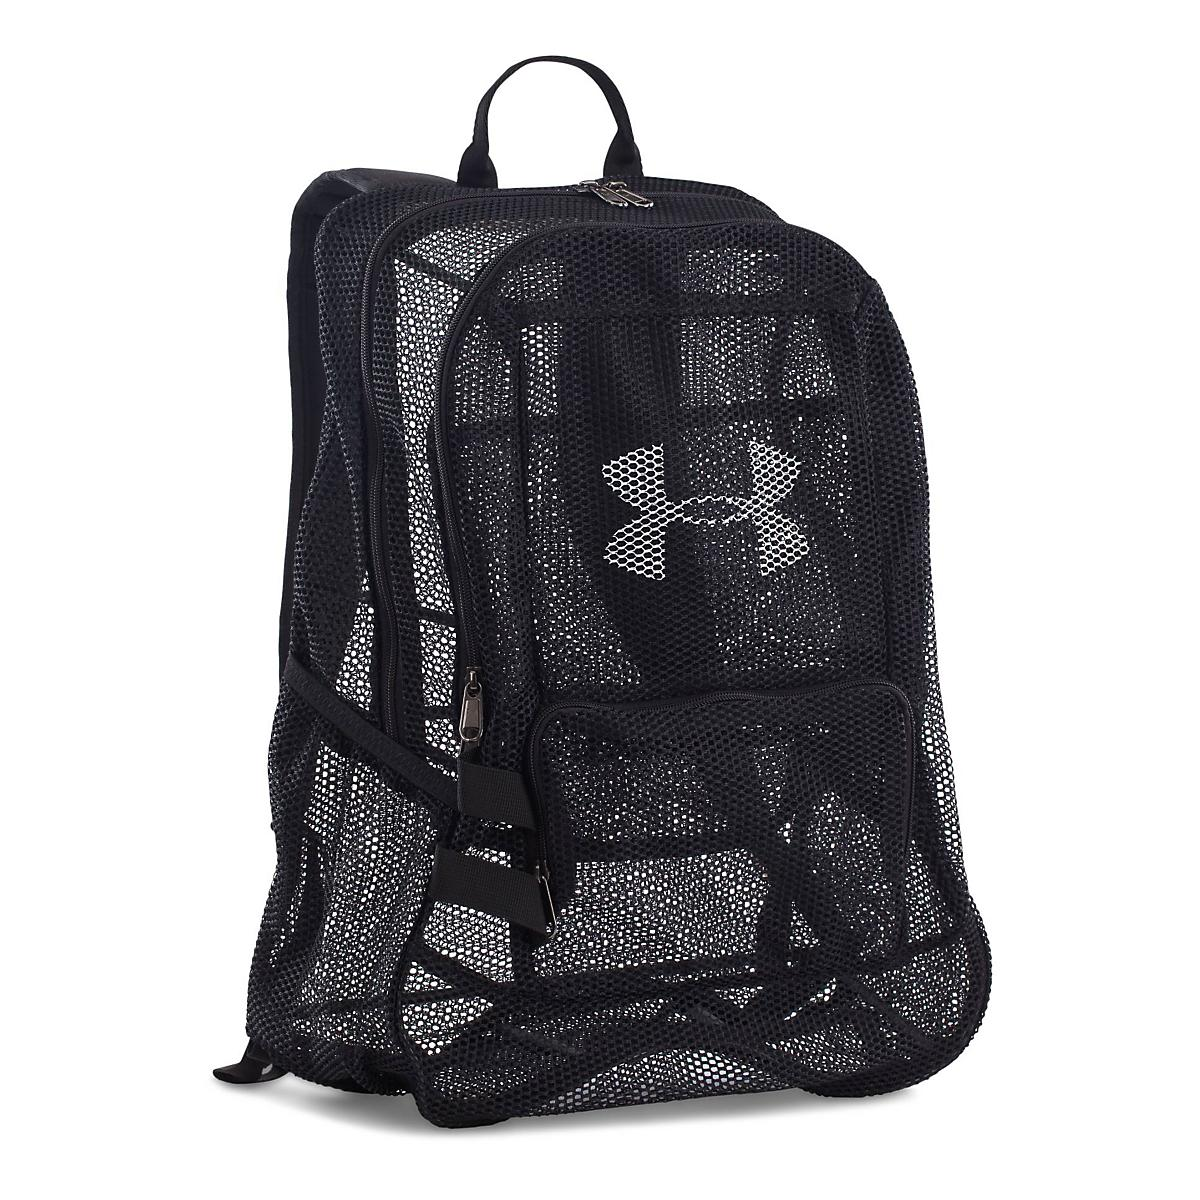 Under Armour�Worldwide Mesh Backpack